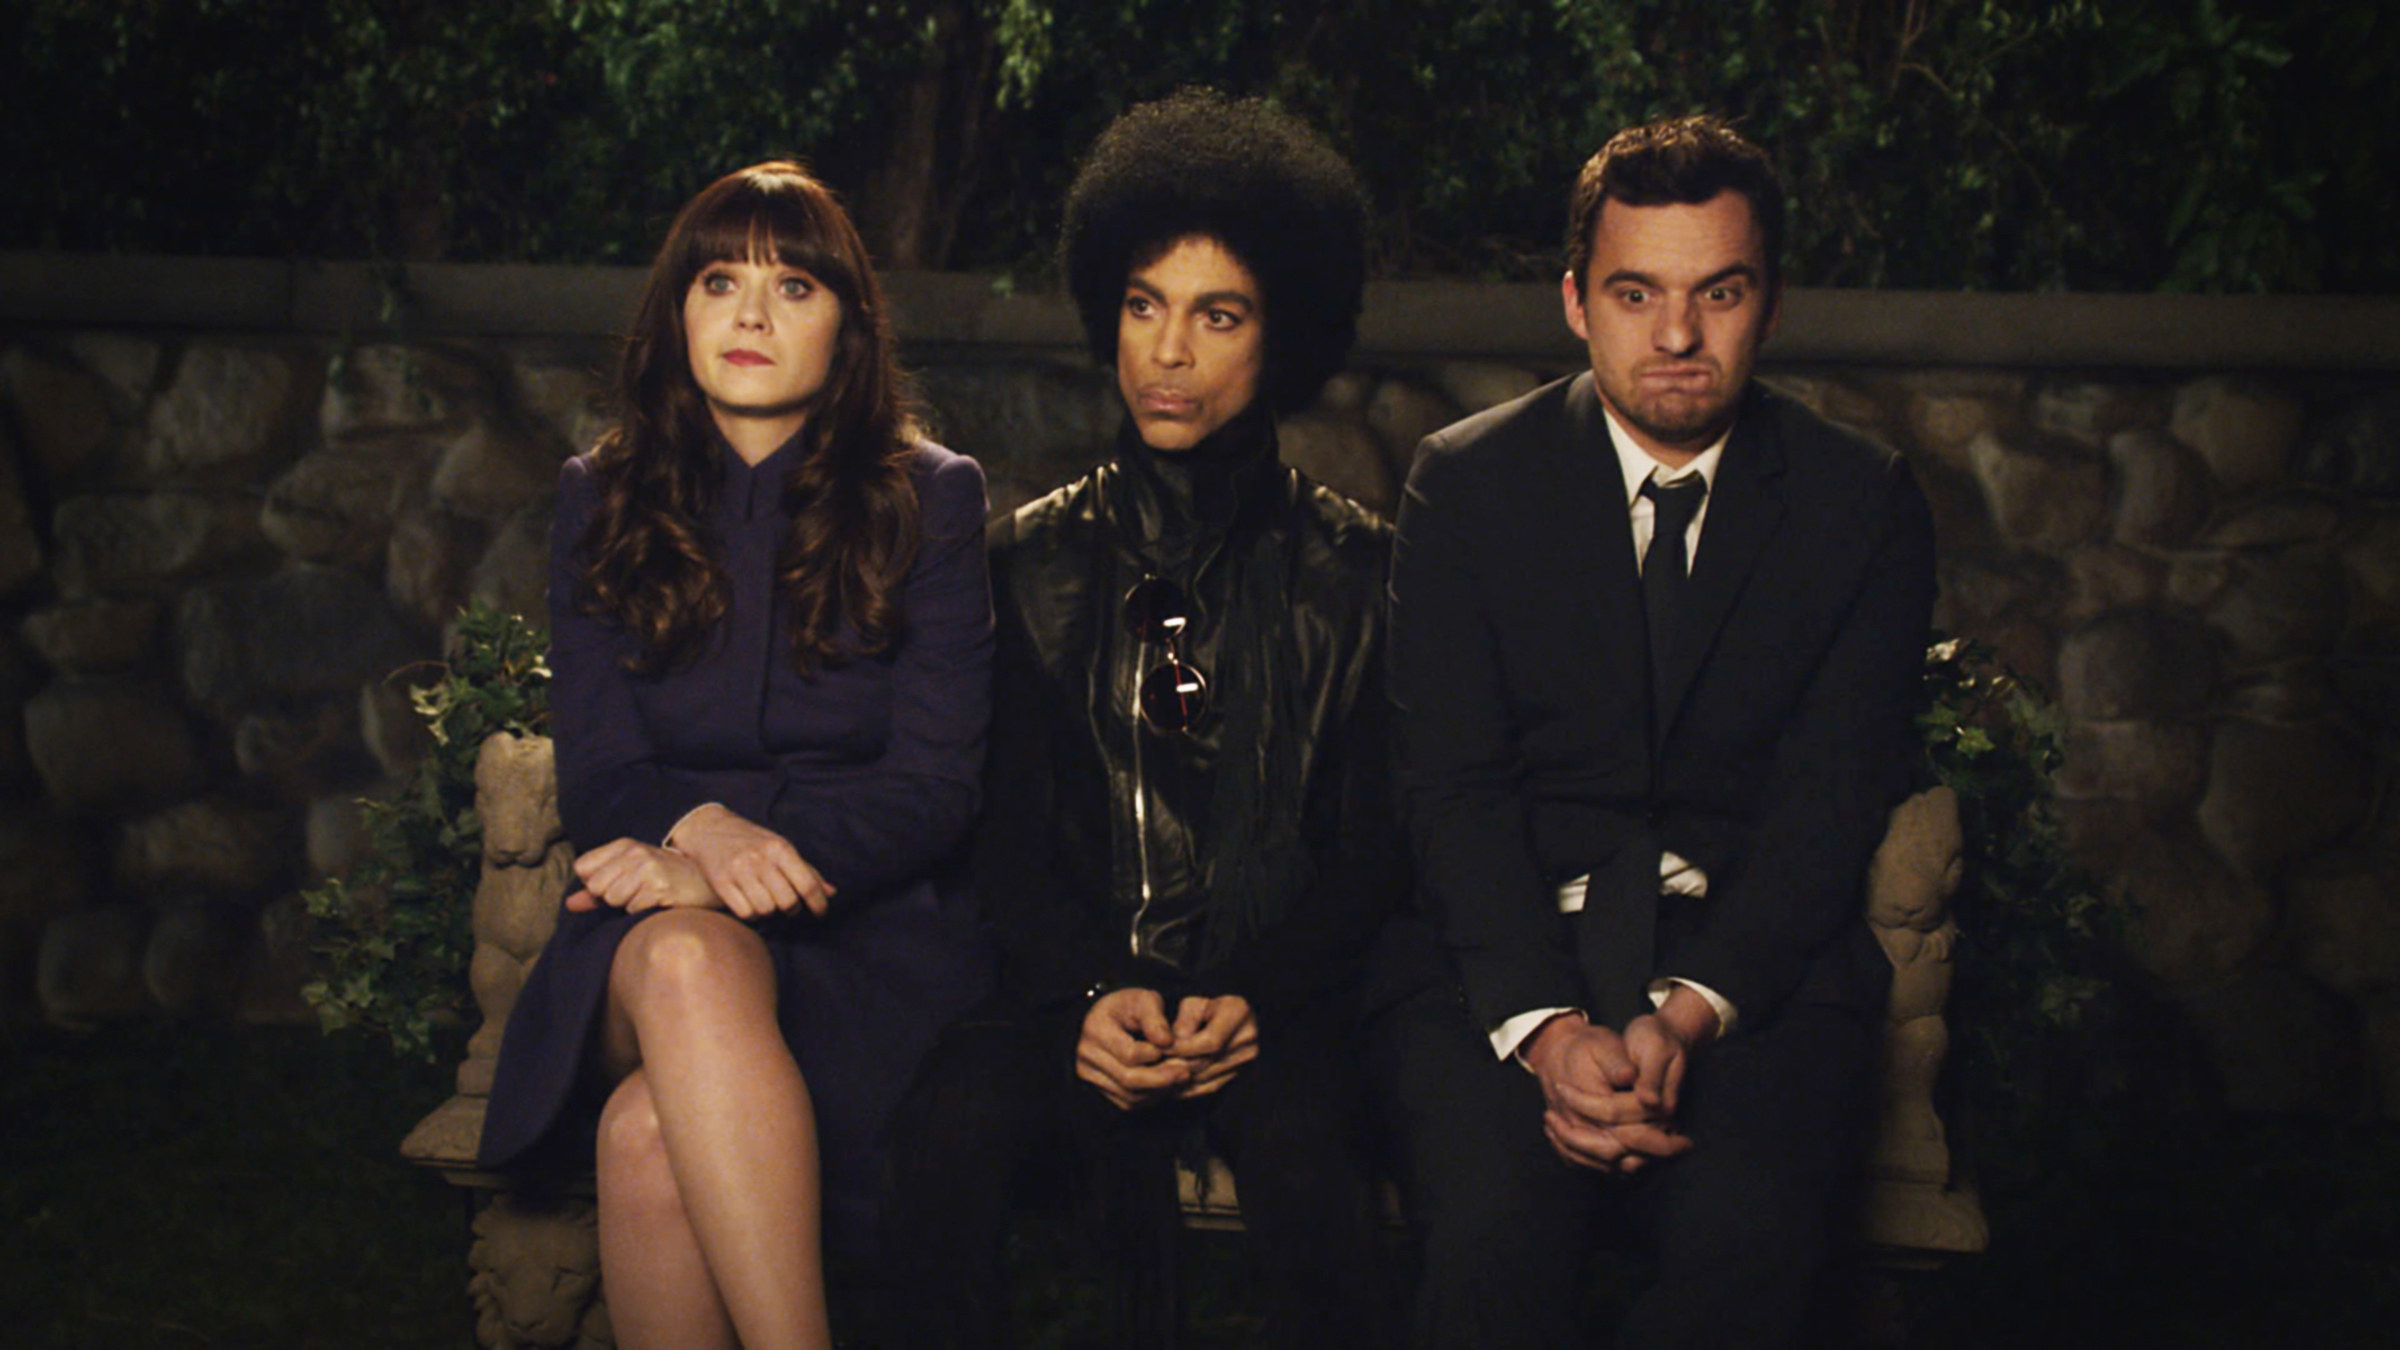 Prince sitting between Nick and Jess